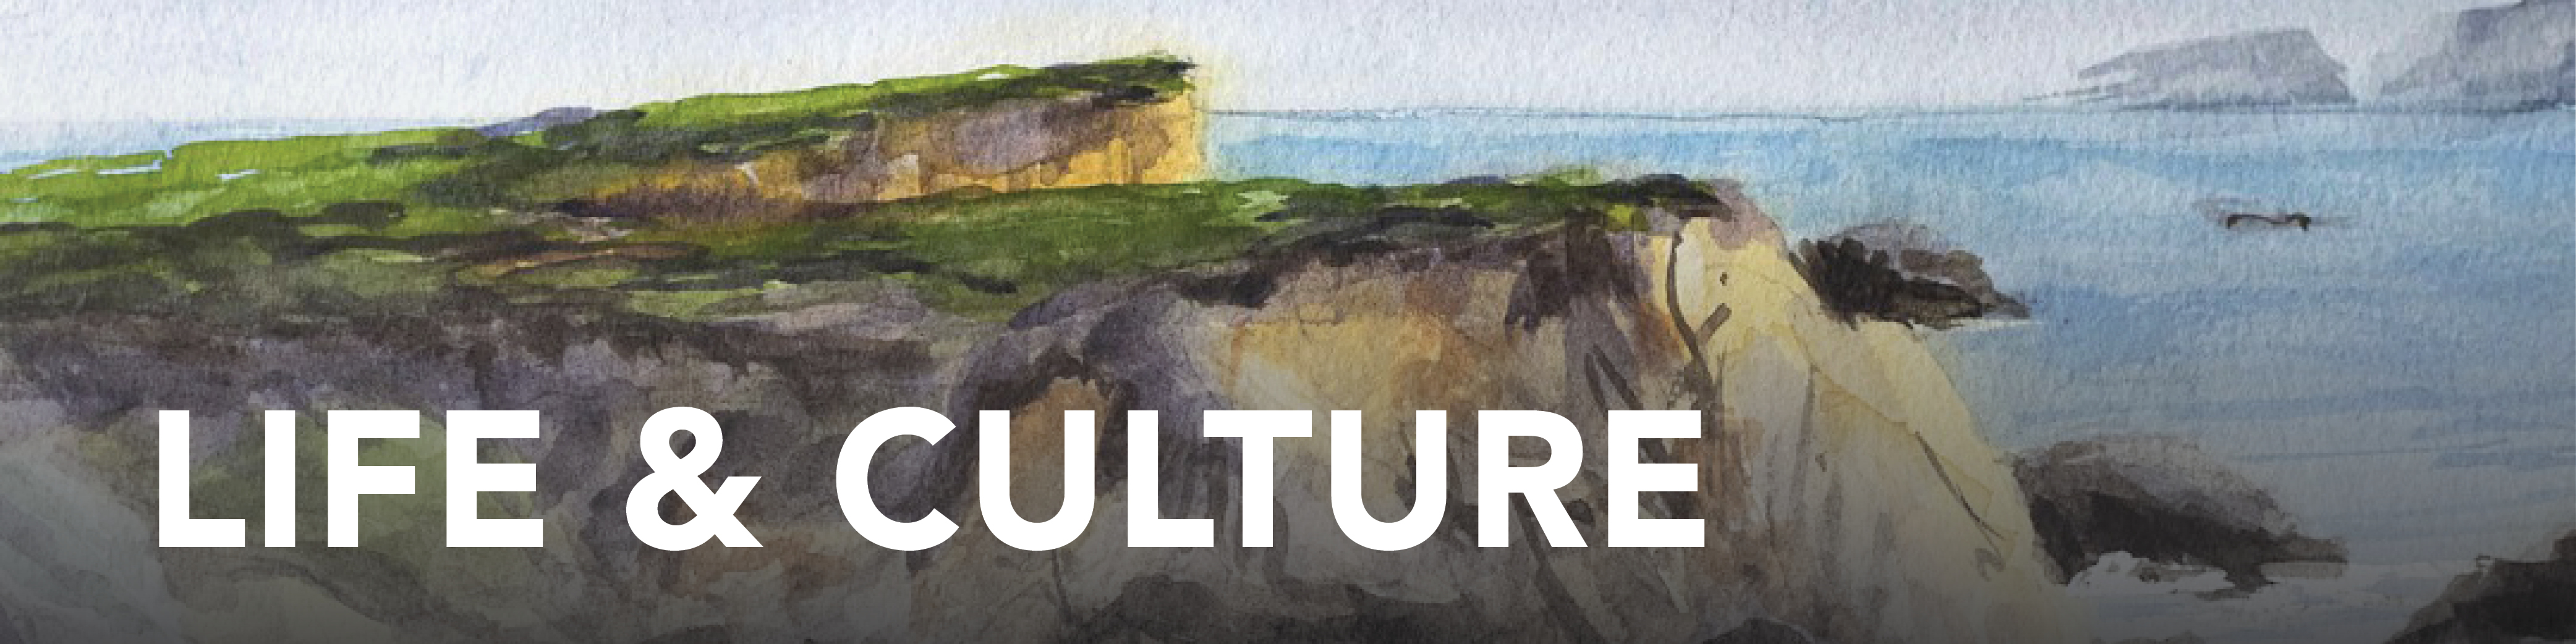 life and culture header image